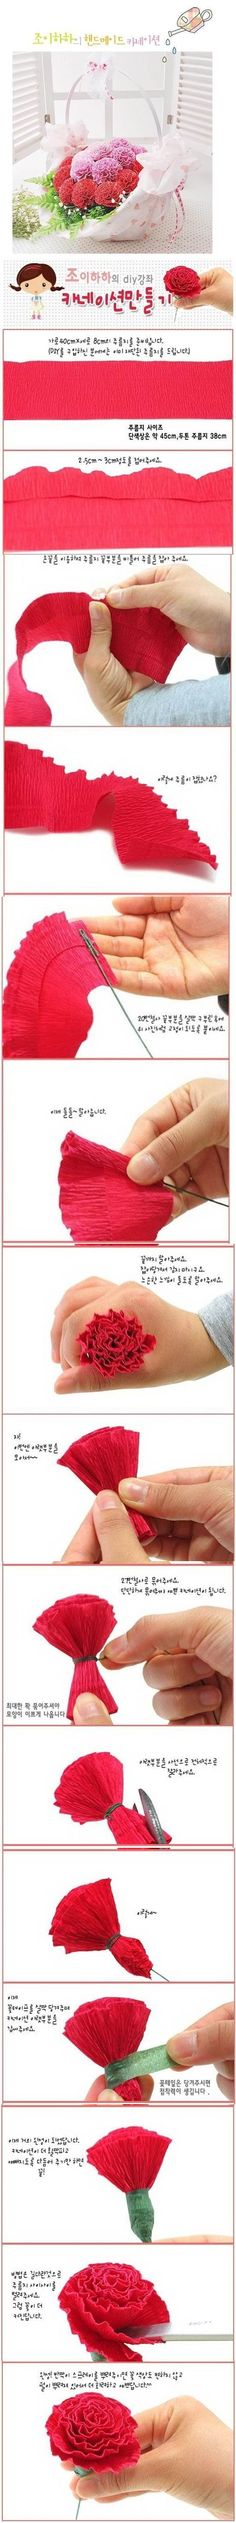 DIY Beautiful Crepe Paper Carnation | iCreativeIdeas.com LIKE Us on Facebook == https://www.facebook.com/icreativeideas